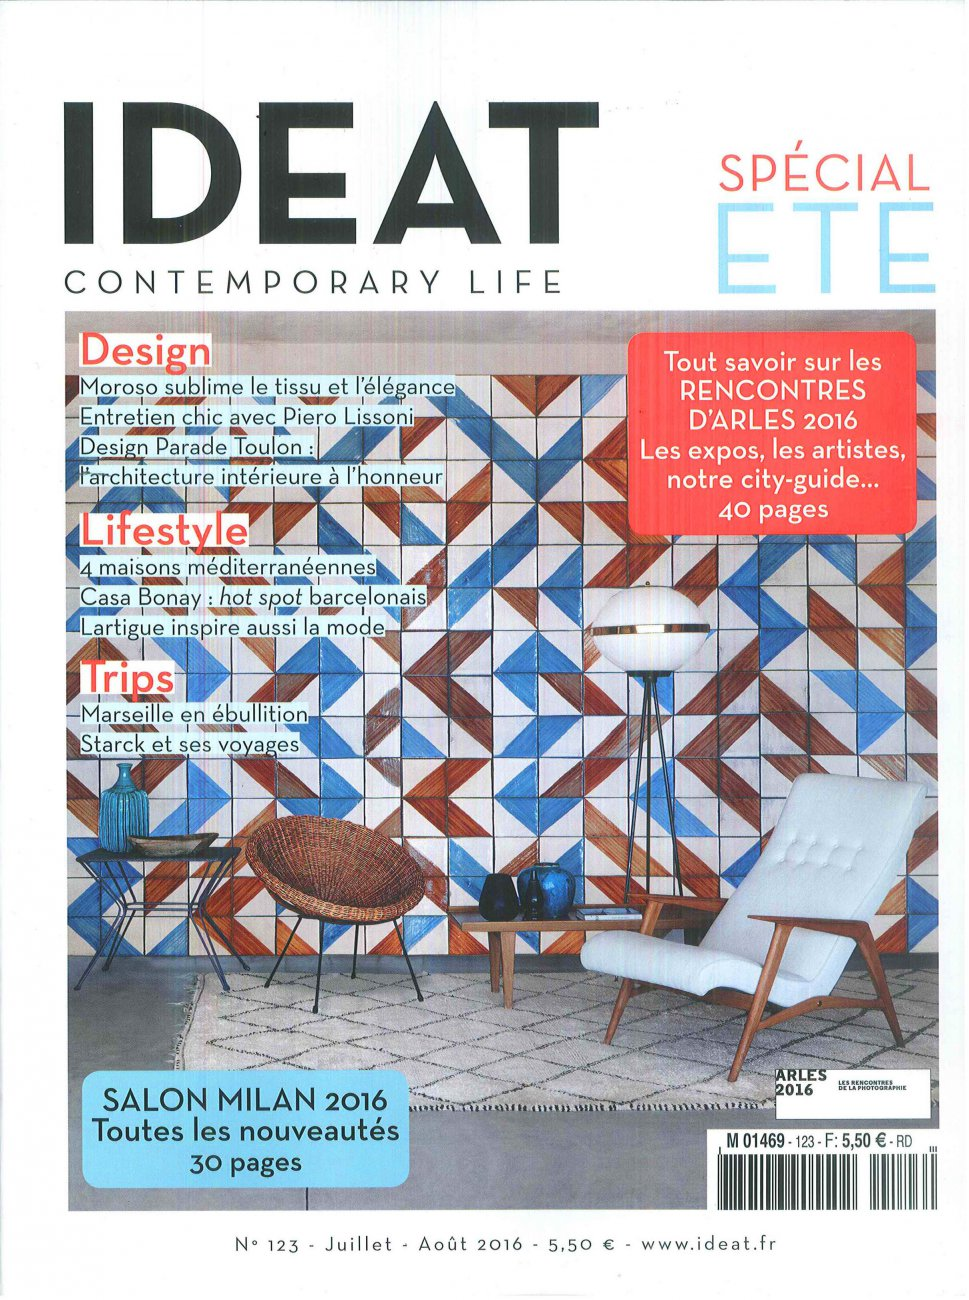 IDEAT N.123 - Spécial été / July - August 2016 / IDEAT